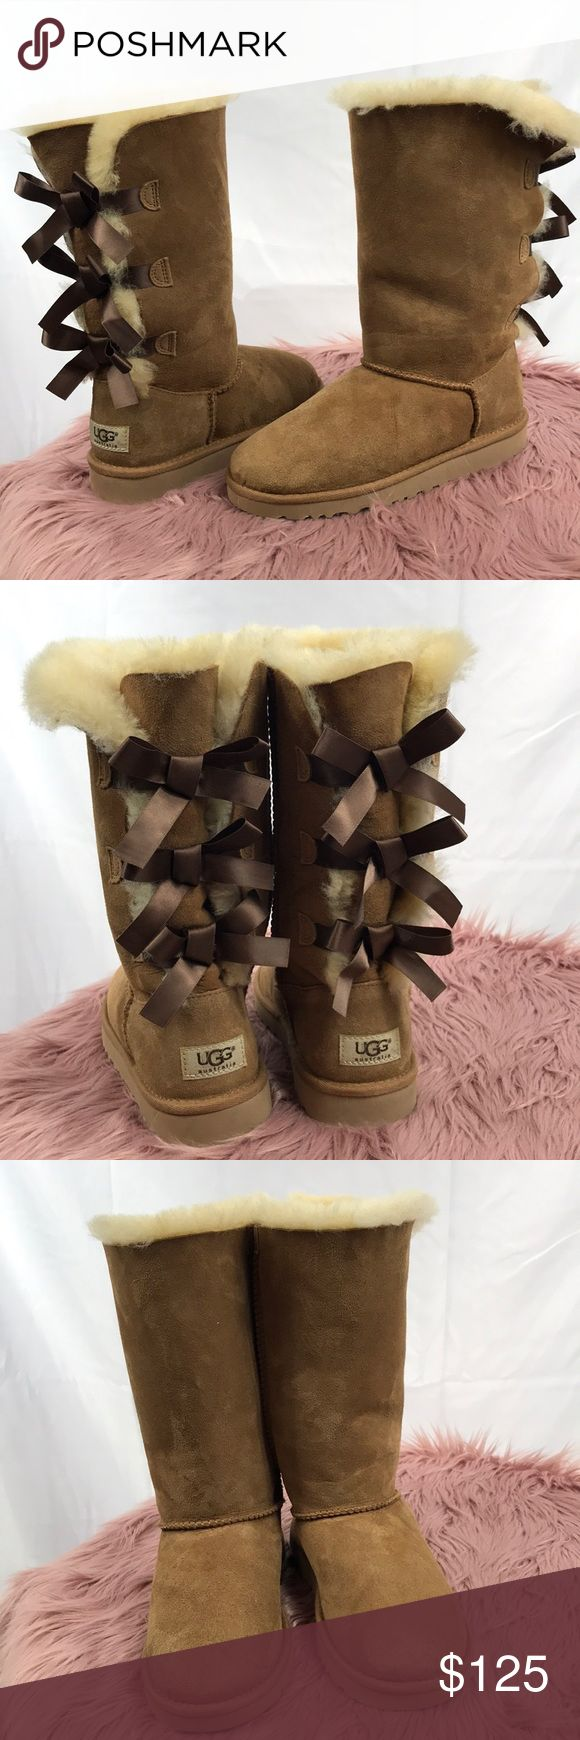 UGG Chesnut Bailey Bow Tall Boot NEW WITH MINOR DEFECTS. 100% AUTHENTIC.   - Color: Chesnut - Embellished with fixed, double ribbon bows at the back, enhancing the defining features of an UGG Classic.  - Twin-faced sheepskin upper with a suede heel guard and back lacing for added appeal - Fixed, decorative bows along back shaft - Color: Chesnut  - Size: 10   NOTE: The defect of this item is the minimal scuffs due to being packaged without a box. UGG Shoes Rain & Snow Boots